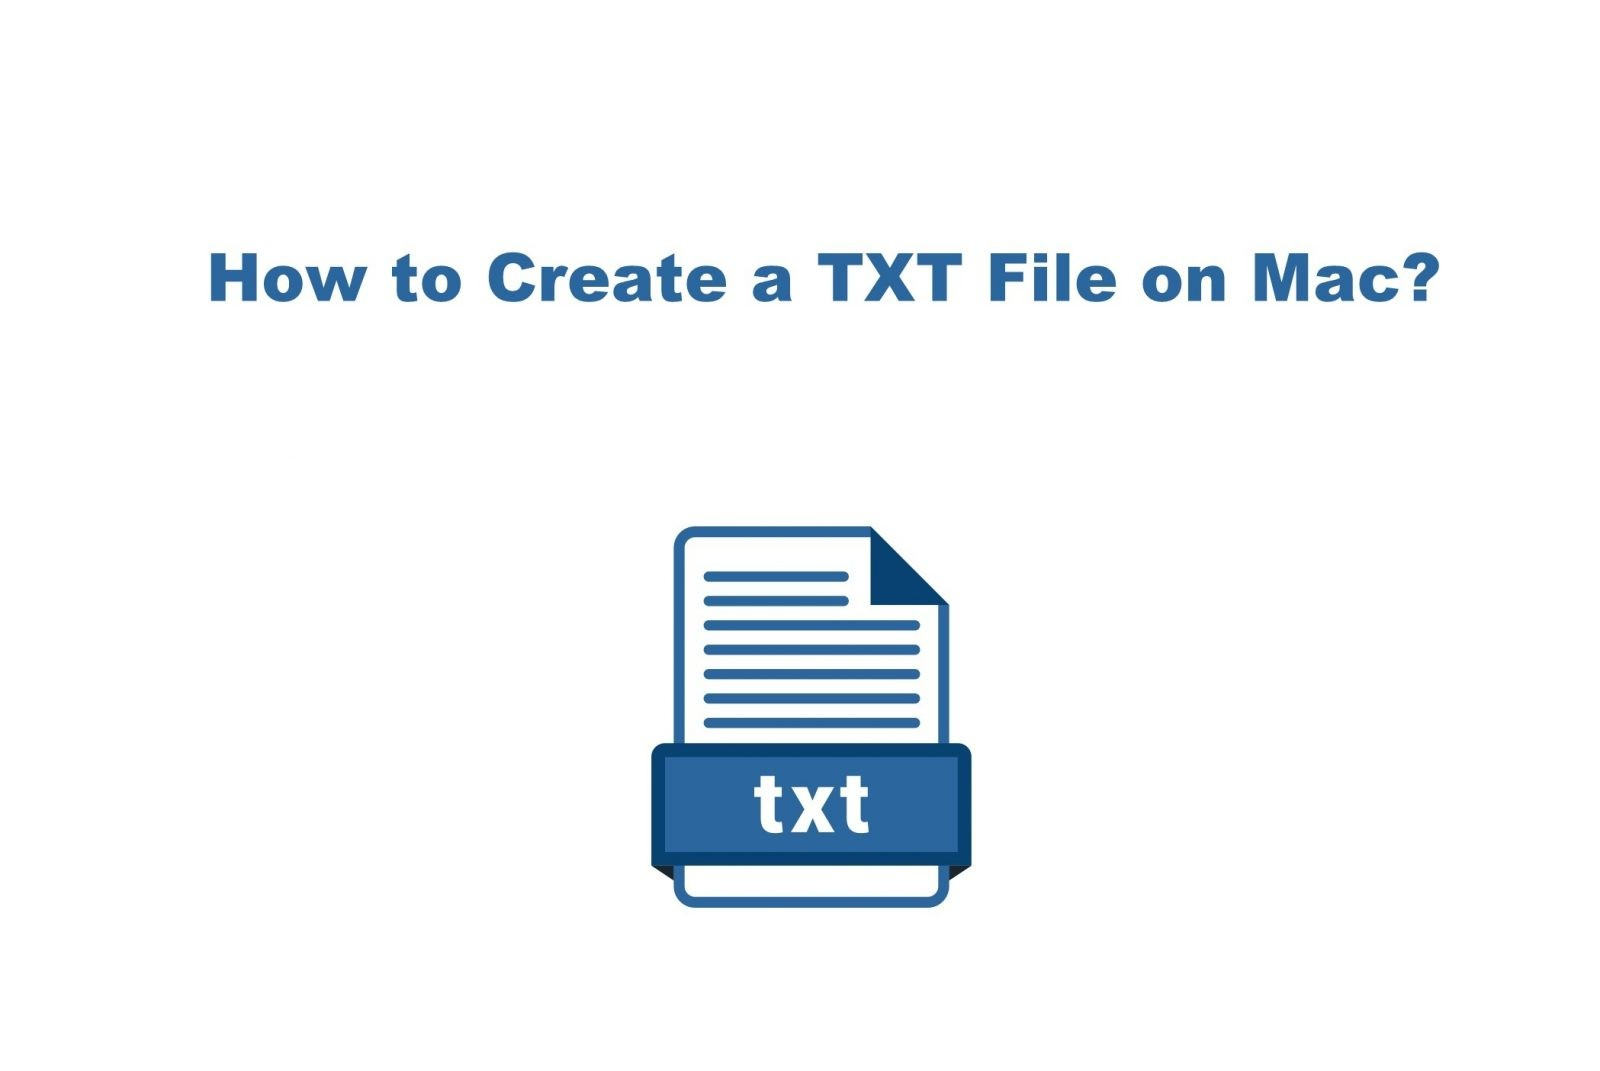 How to Create a TXT File on Mac [Step By Step Guide]